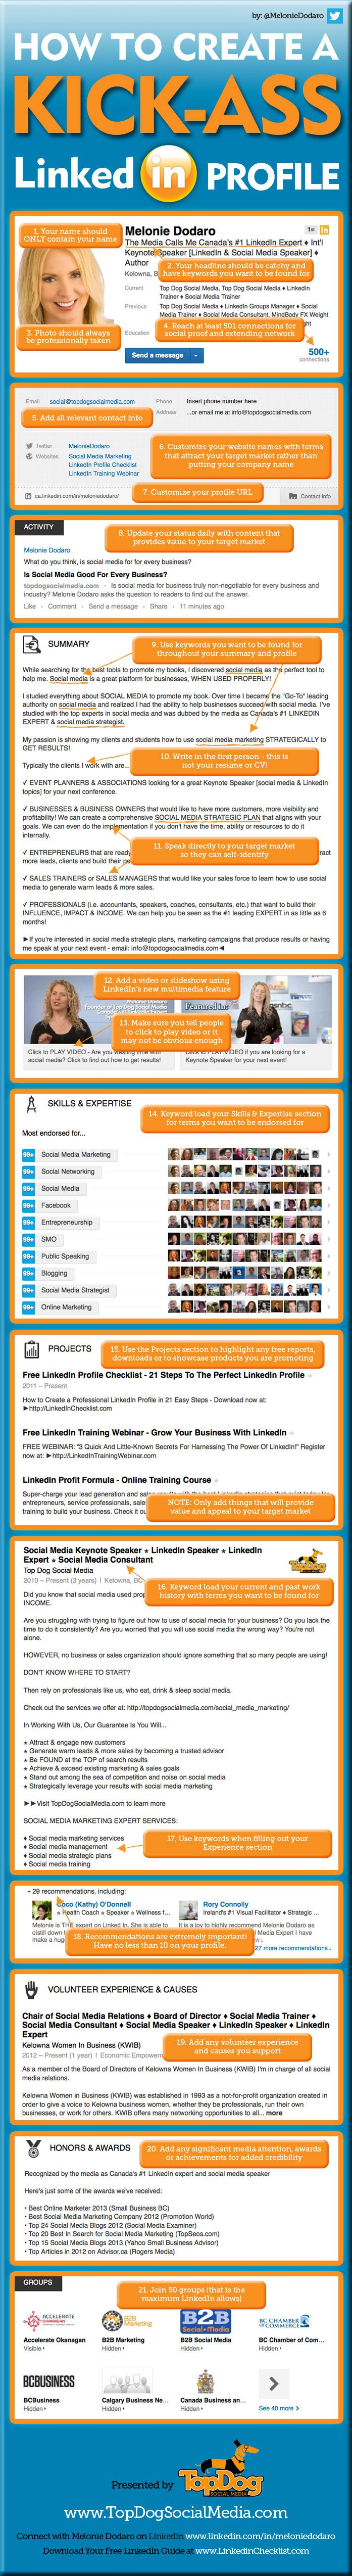 the ultimate linkedin profile makeover  infographic of the week